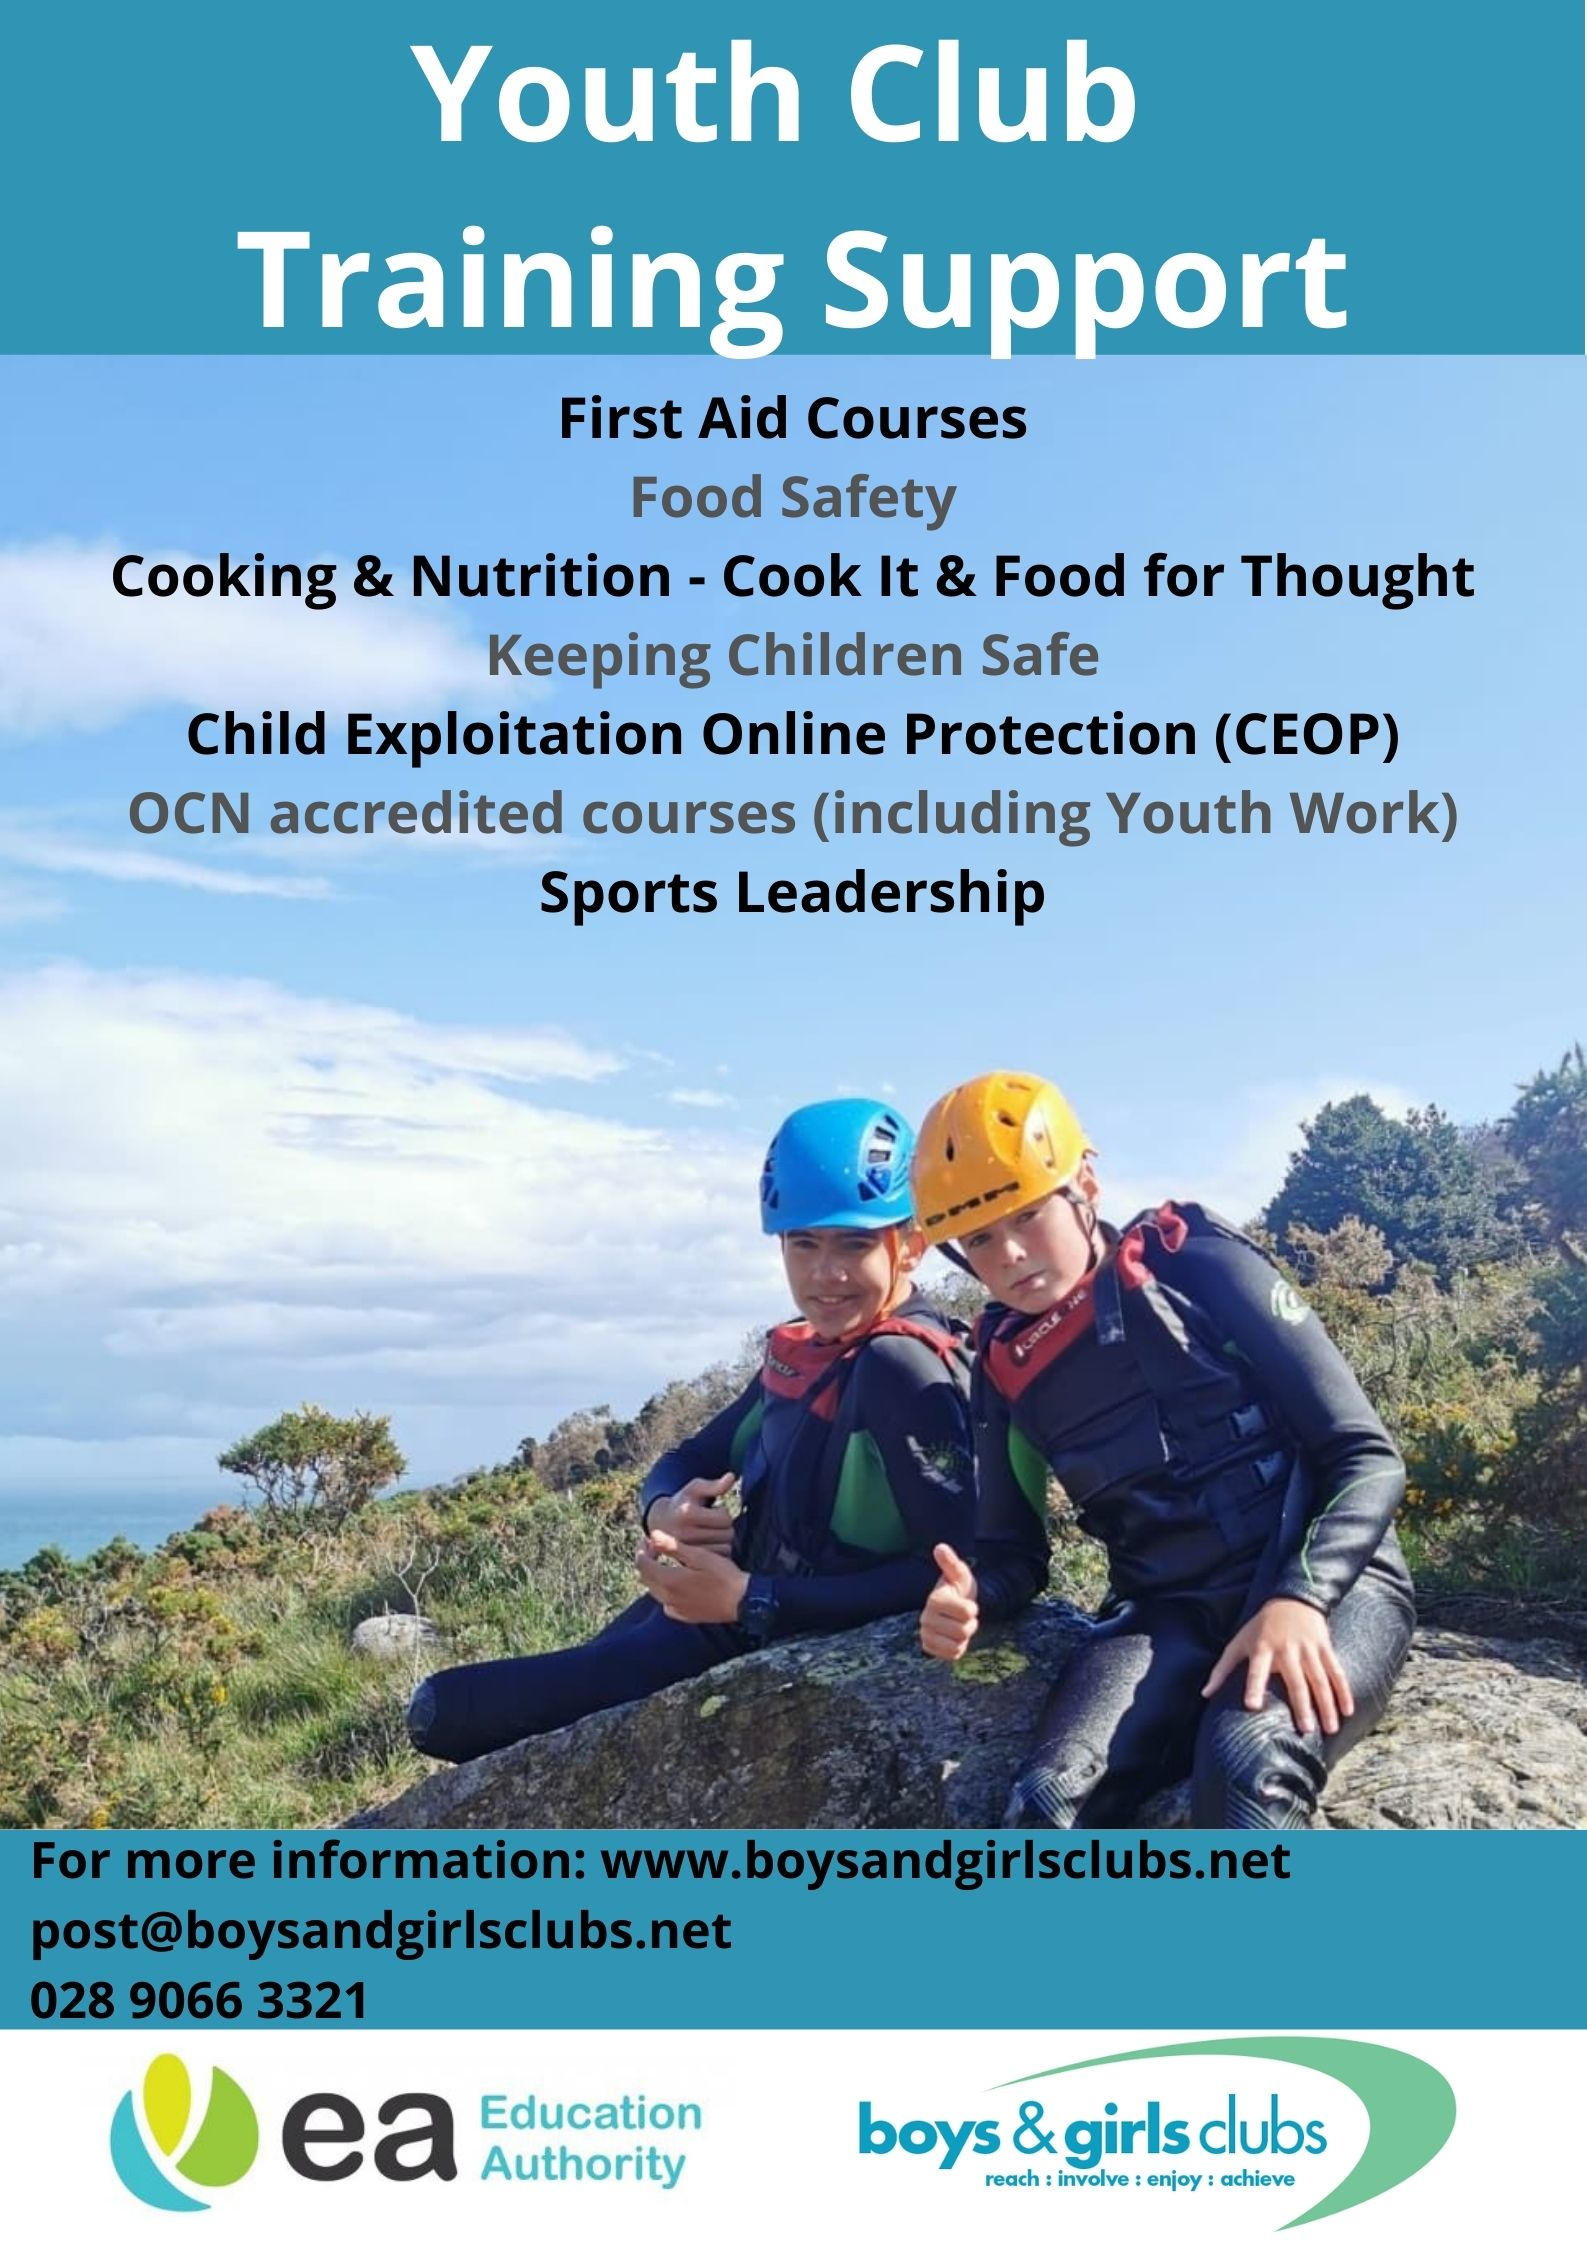 Youth Club Training Support